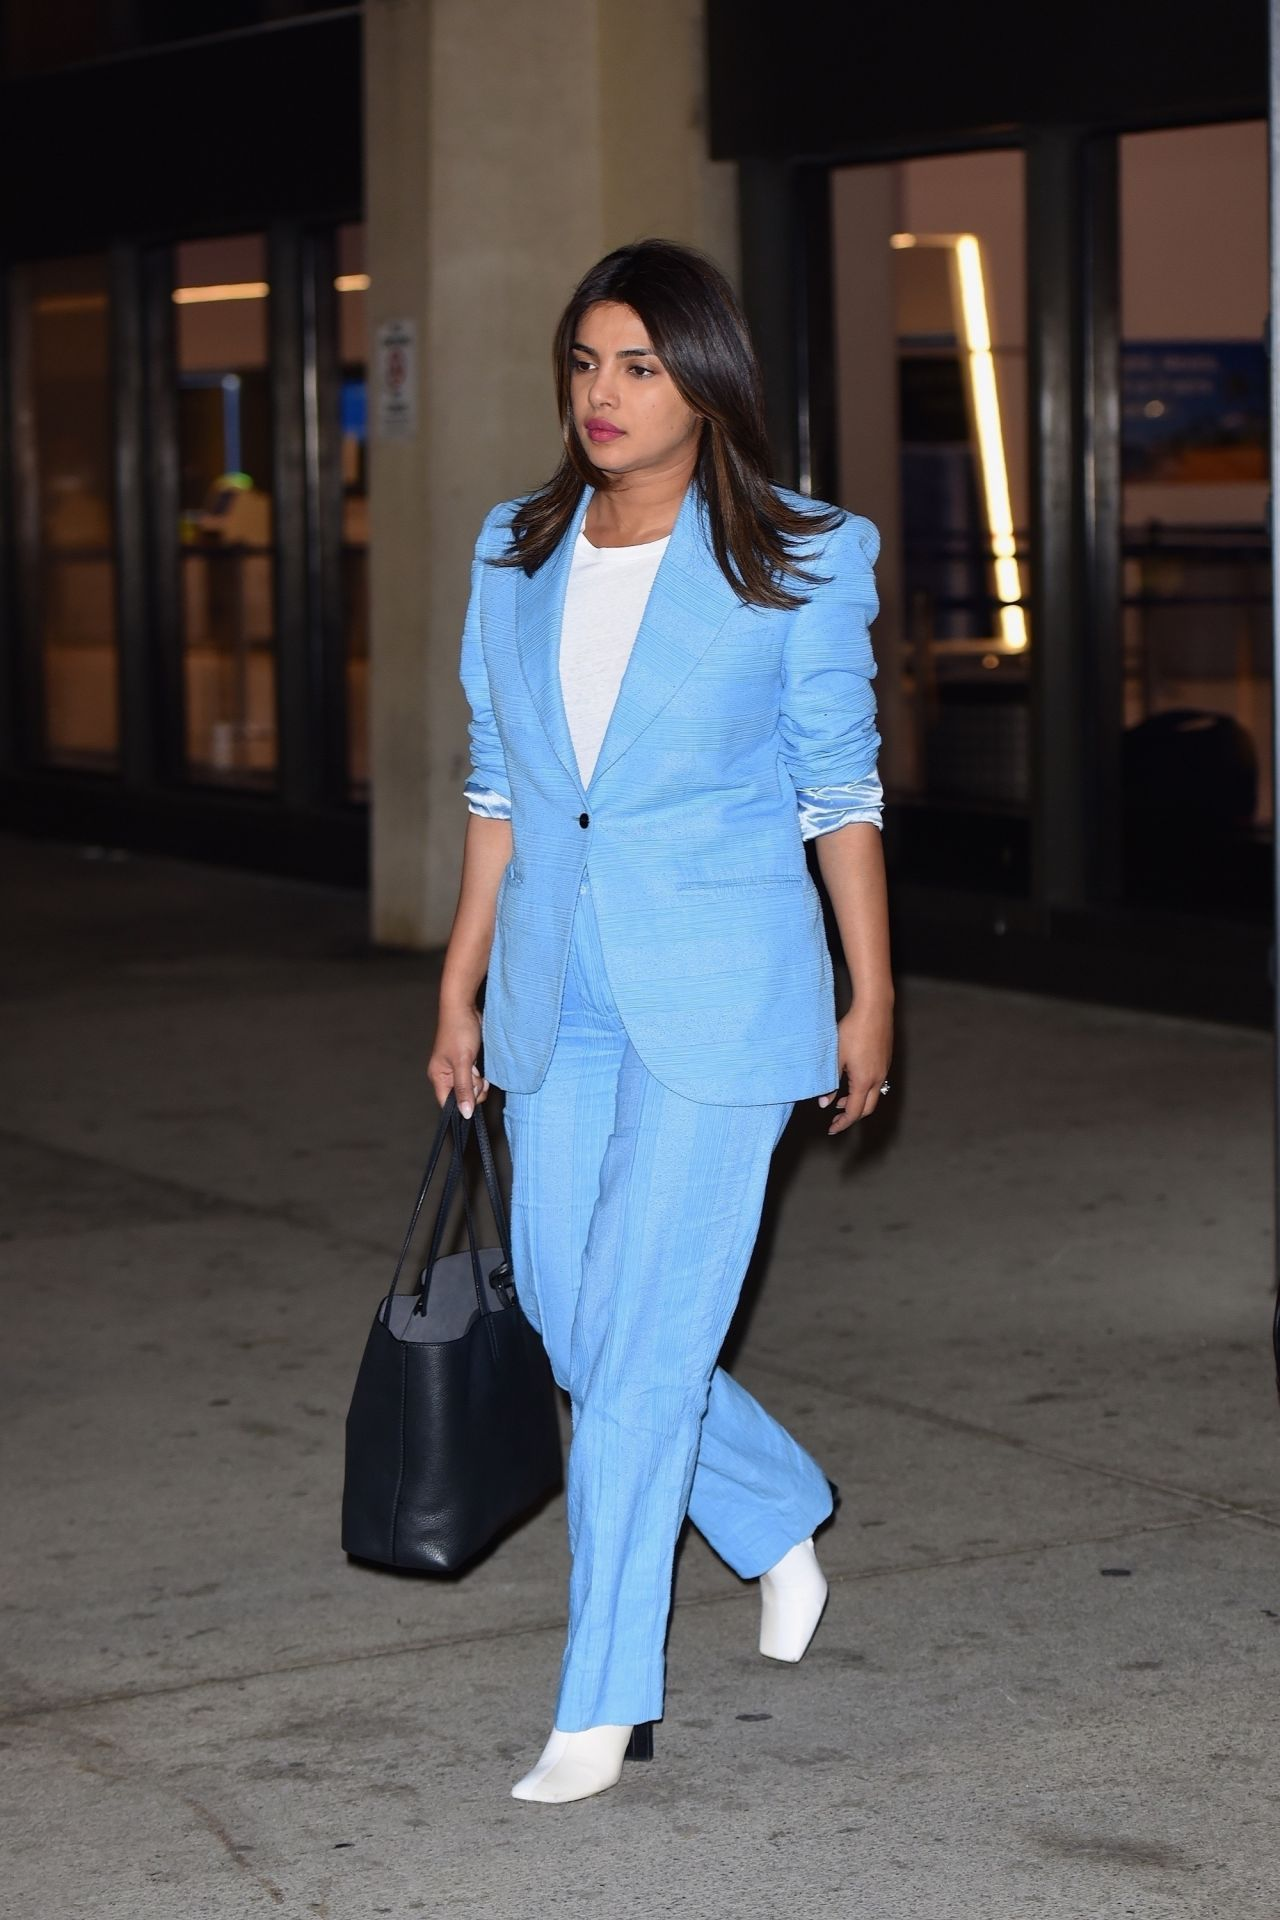 priyanka-chopra-in-blue-suit-newark-airport-in-new-york